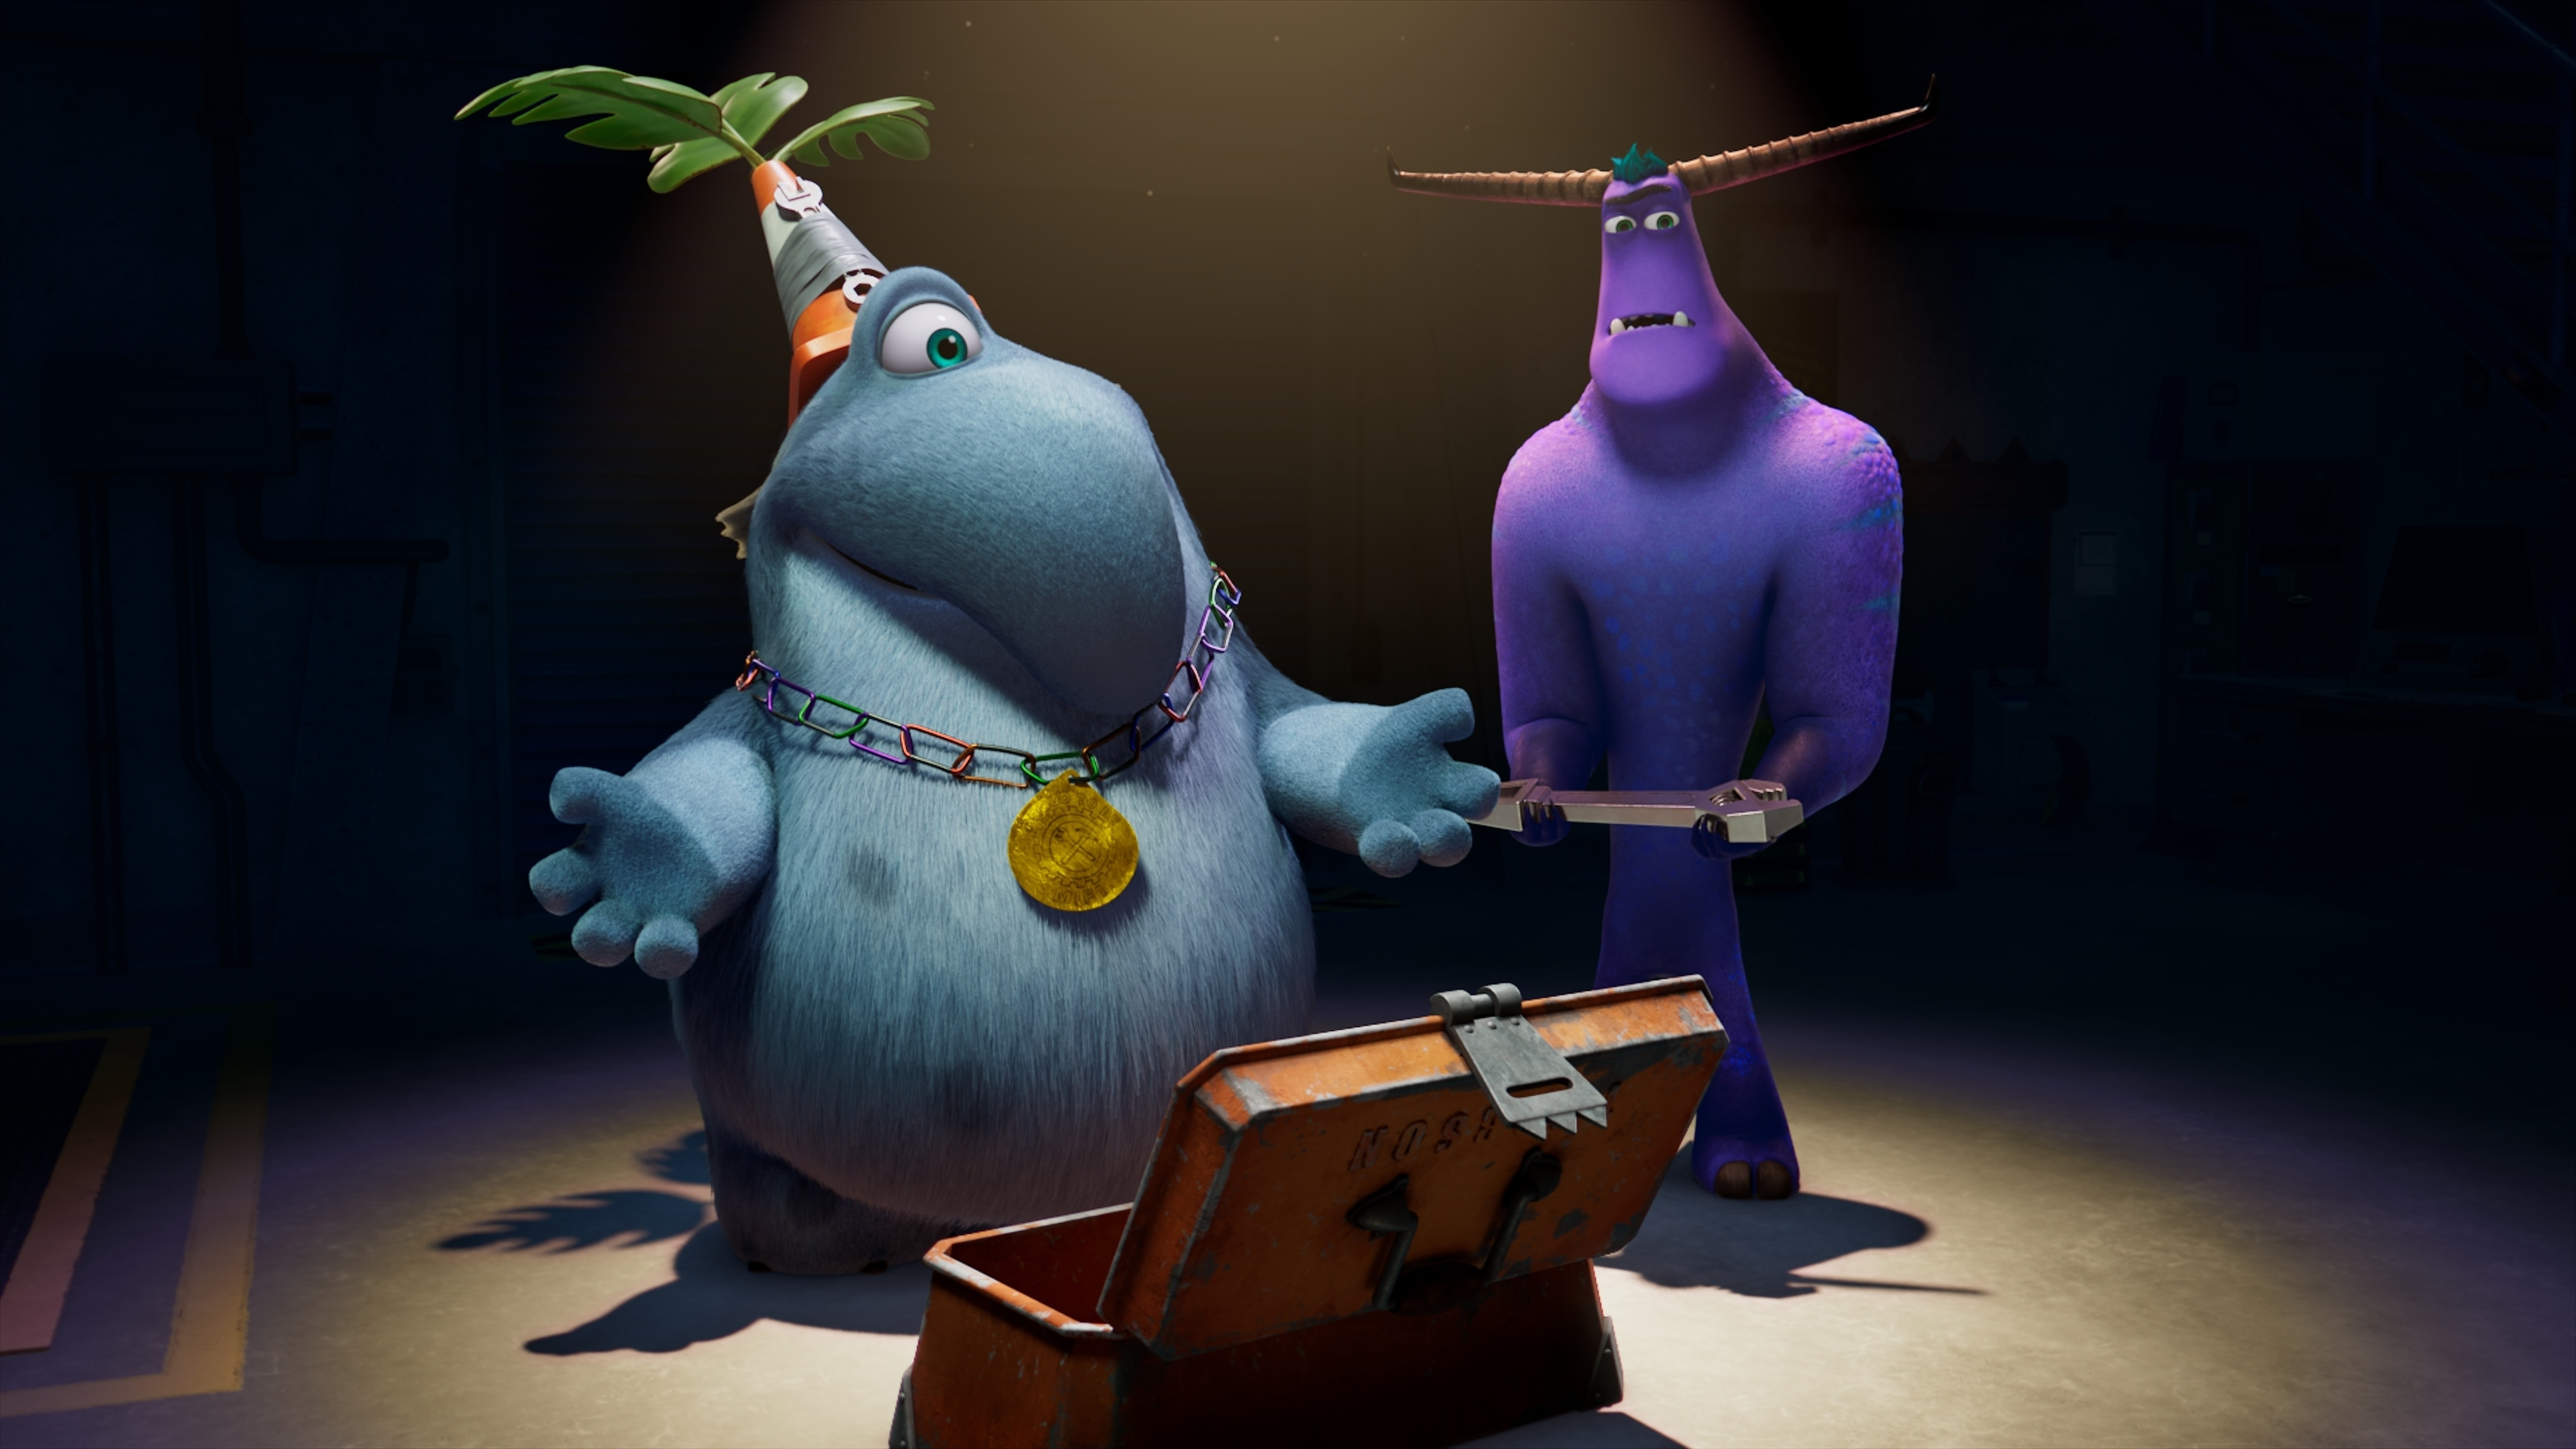 """MONSTERS AT WORK - """"Meet Mift"""" - When Tylor is initiated into MIFT during a bizarre ritual, he wants nothing more than to get away from his odd coworkers.  But when an emergency strikes Monsters, Inc., MIFT kicks into action and Tylor develops a hint of respect for the misfit team. (Disney) FRITZ, TYLOR"""